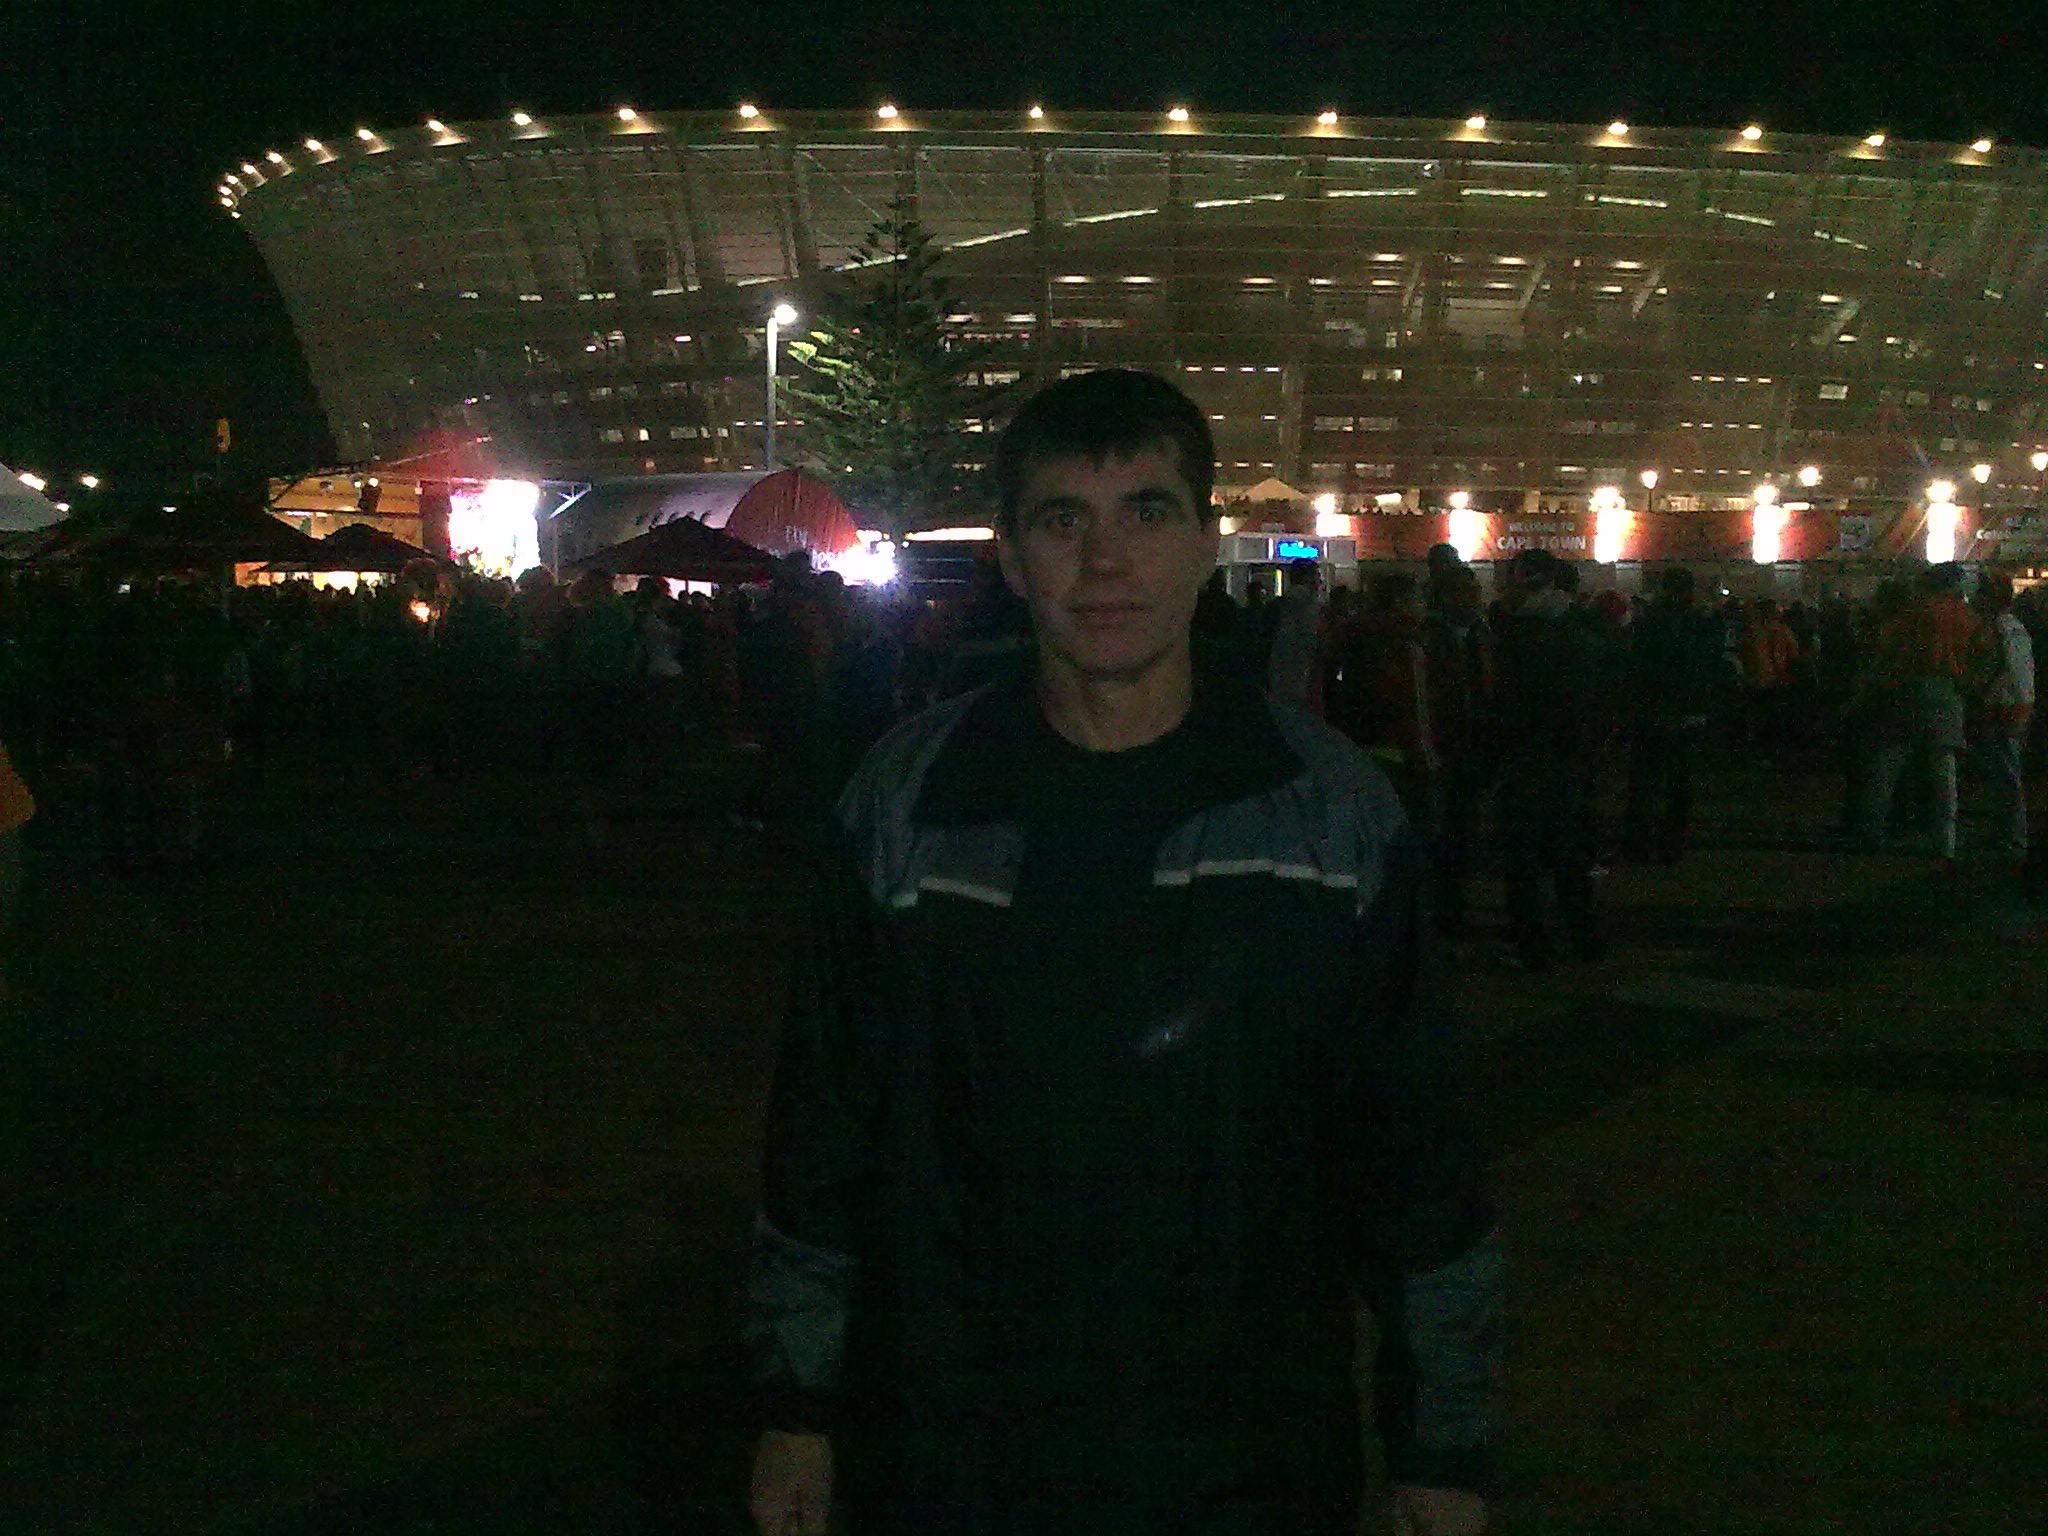 celso at a night game at the stadium